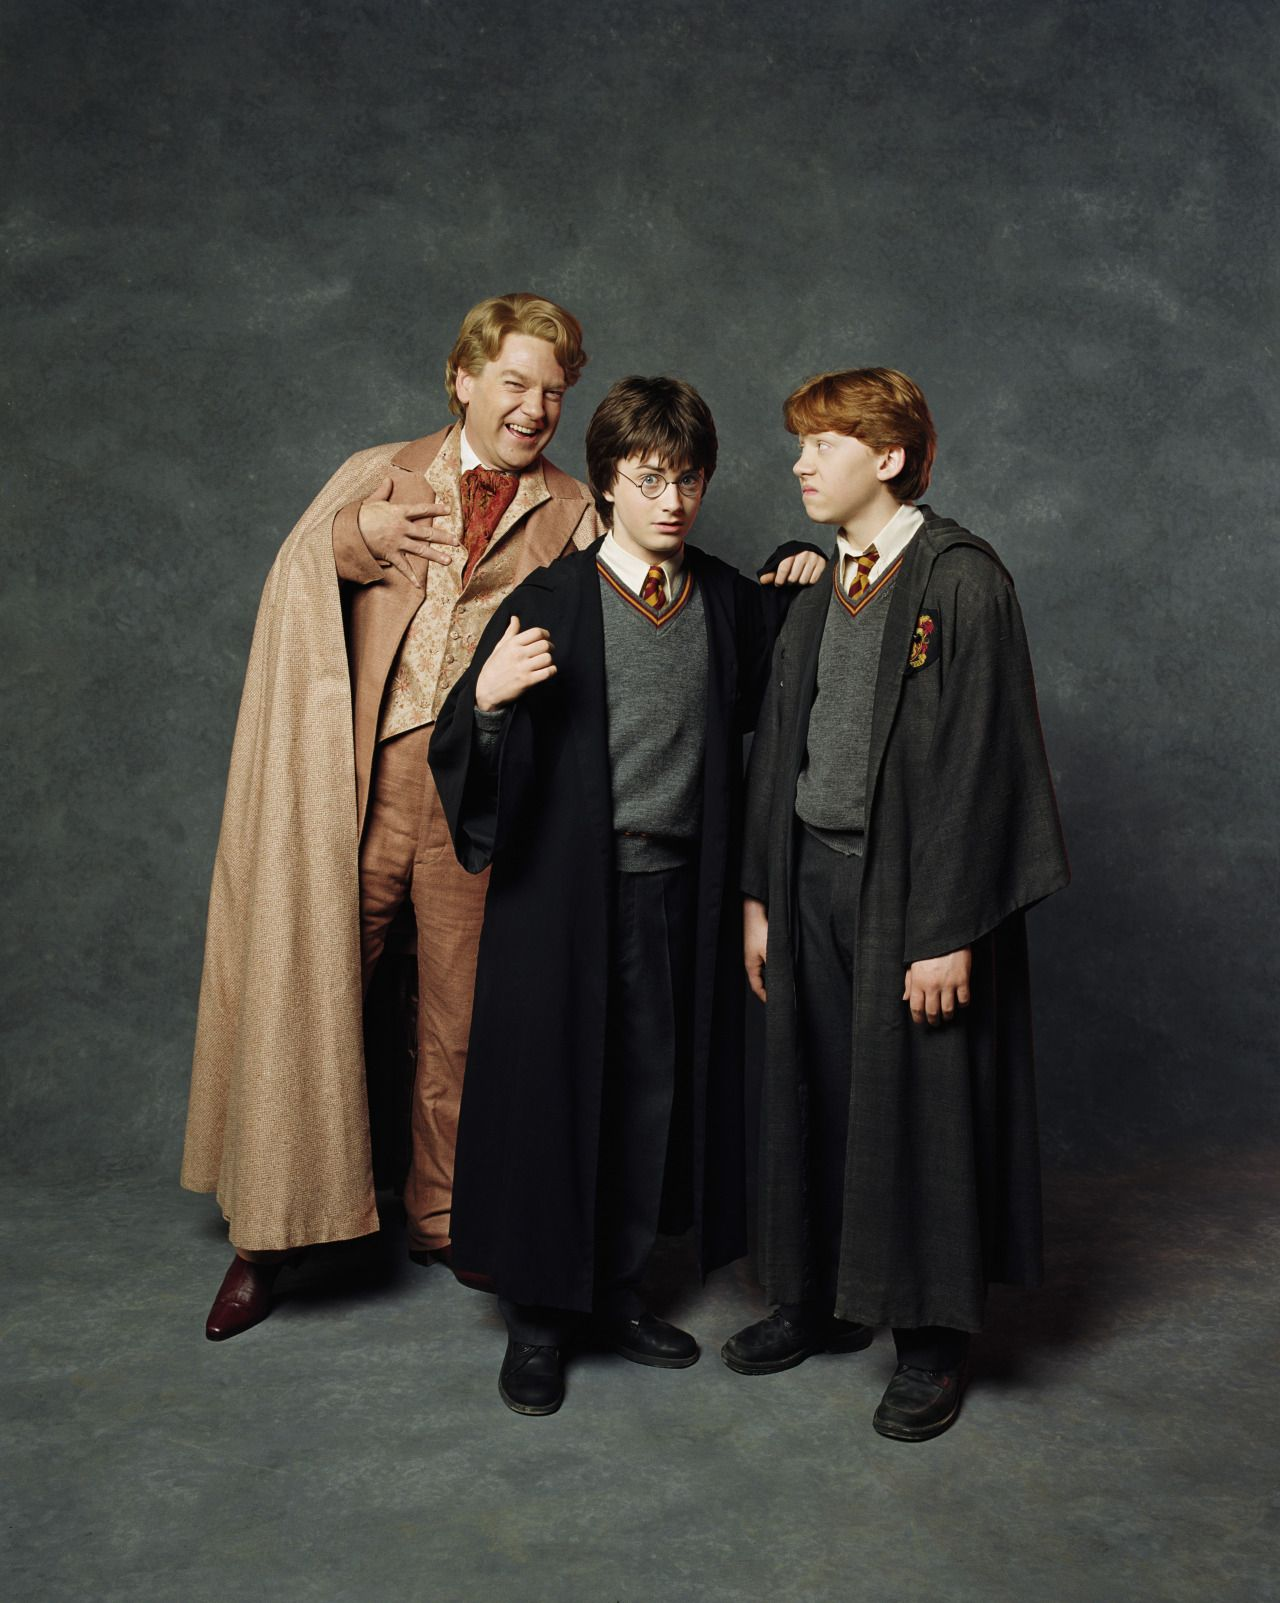 Hq Stills Of Kenneth Branagh As Gilderoy Lockhart Harry Potter And The Chamber Of Secrets 2002 Lockhart Harry Potter Harry Potter Ron Harry Potter Images